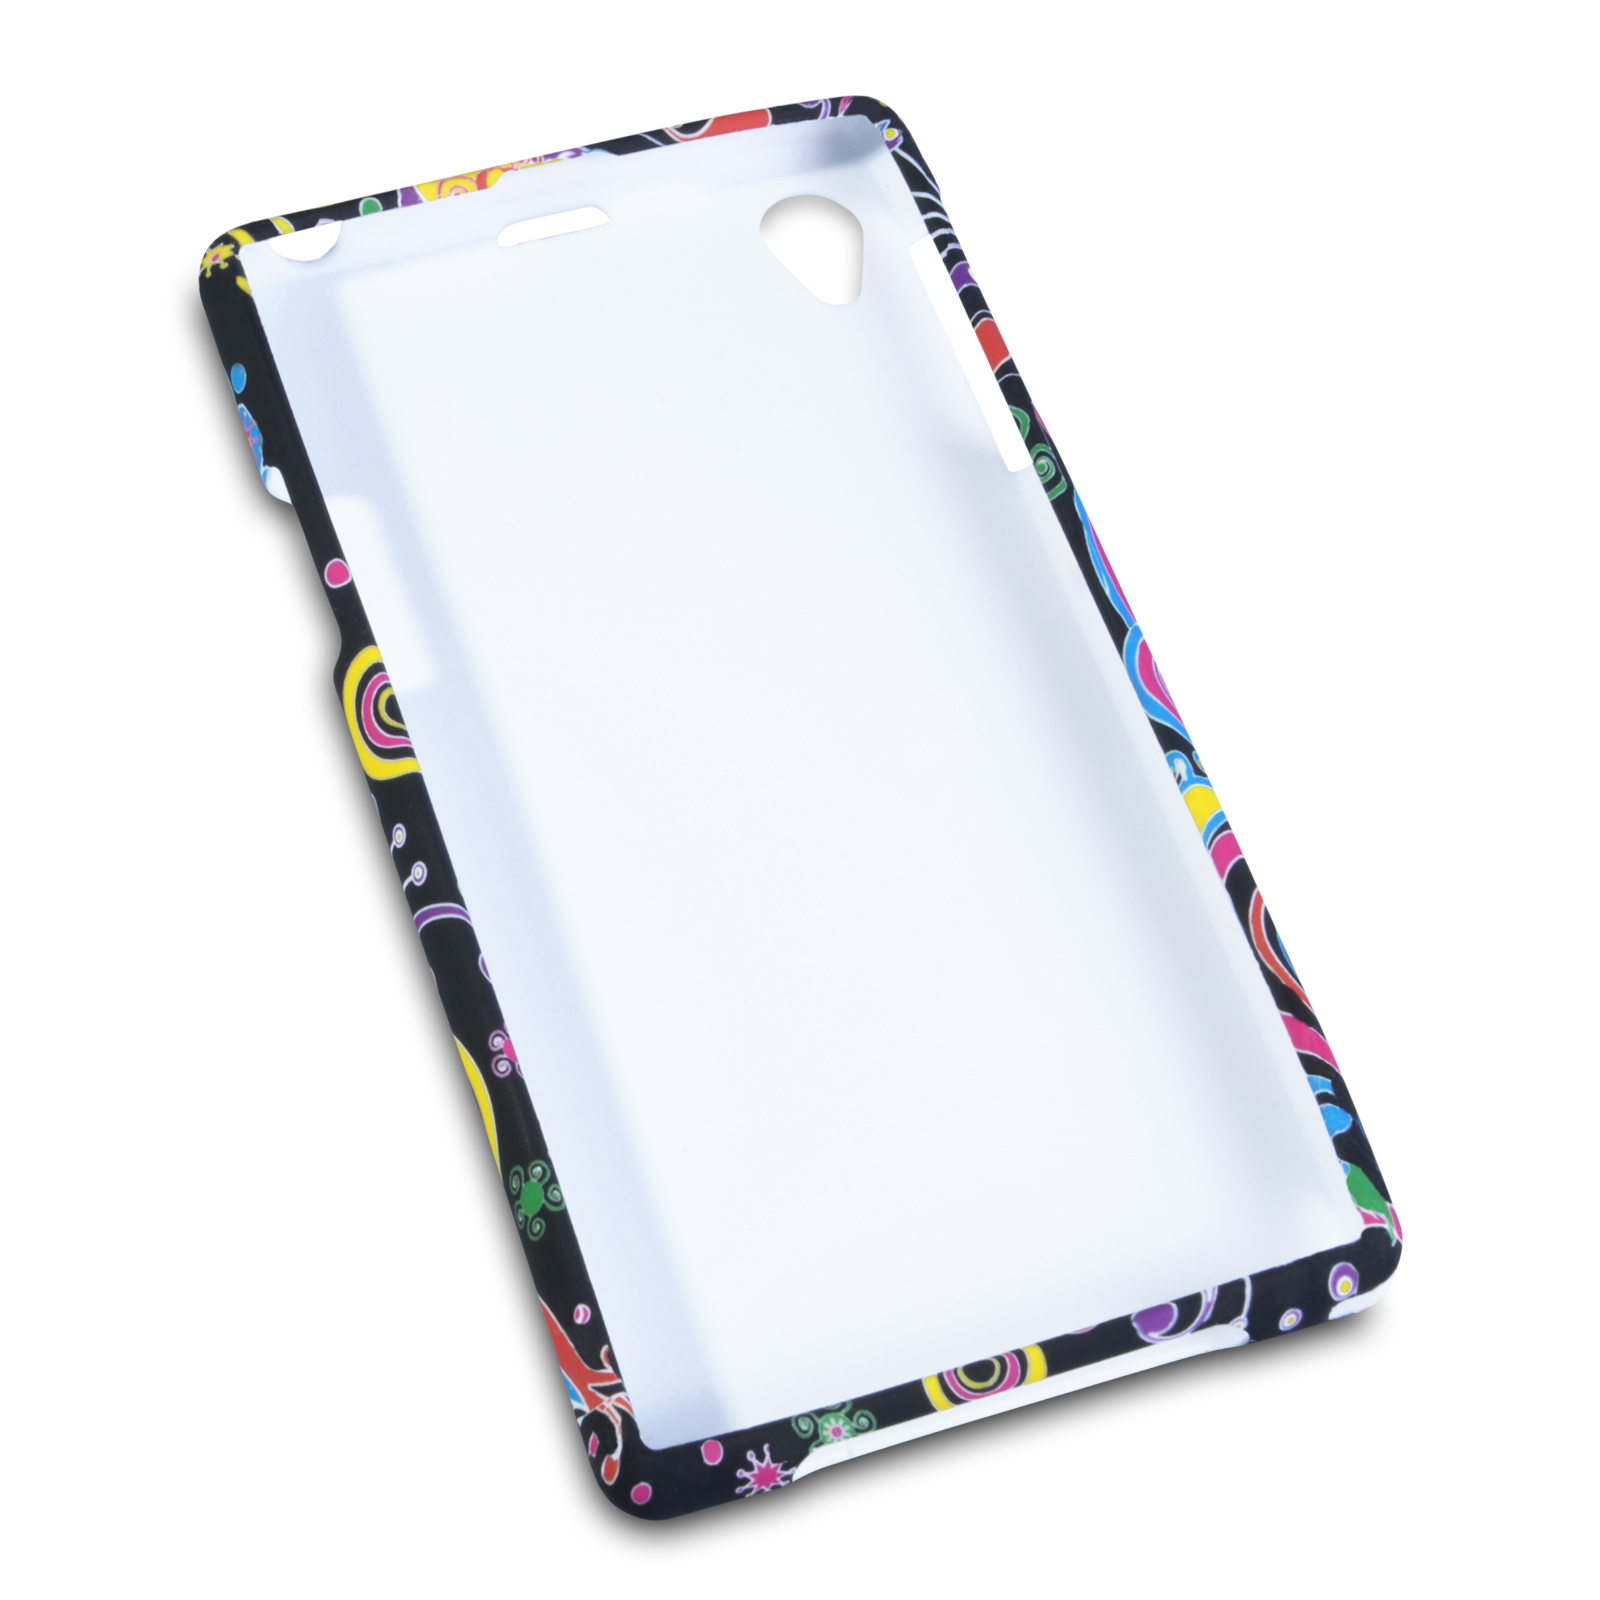 YouSave Accessories Sony Xperia Z2 Jellyfish Silicone Gel Case